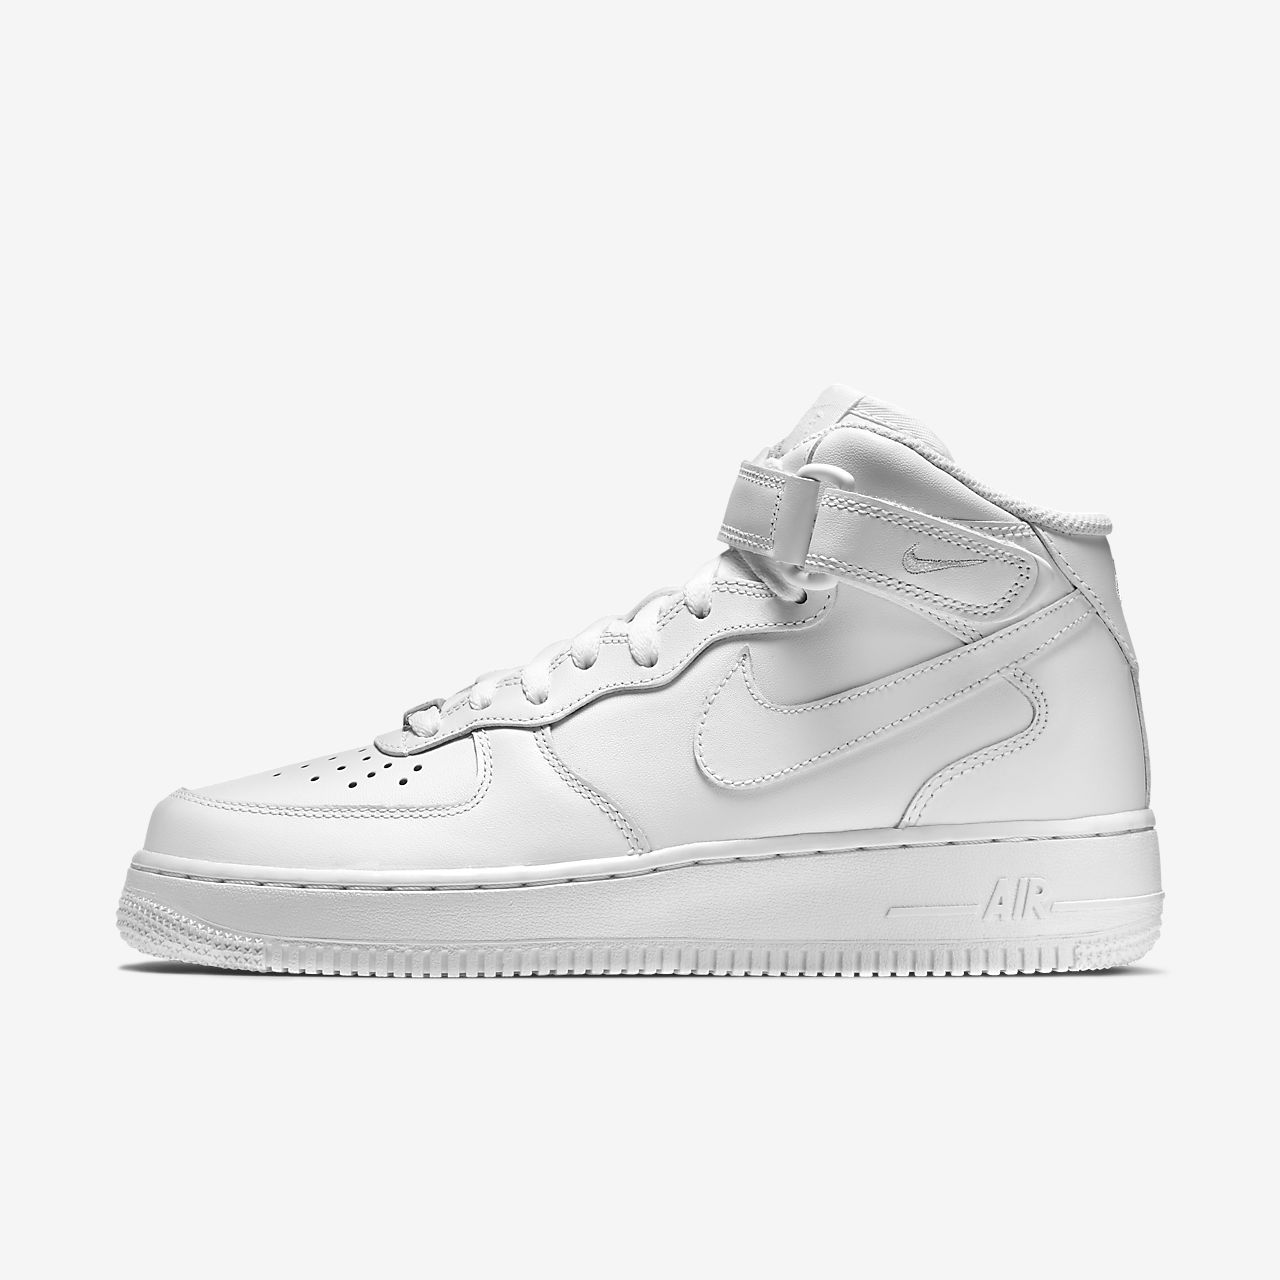 Nike Air Force 1 Mid '07 Women's Shoe